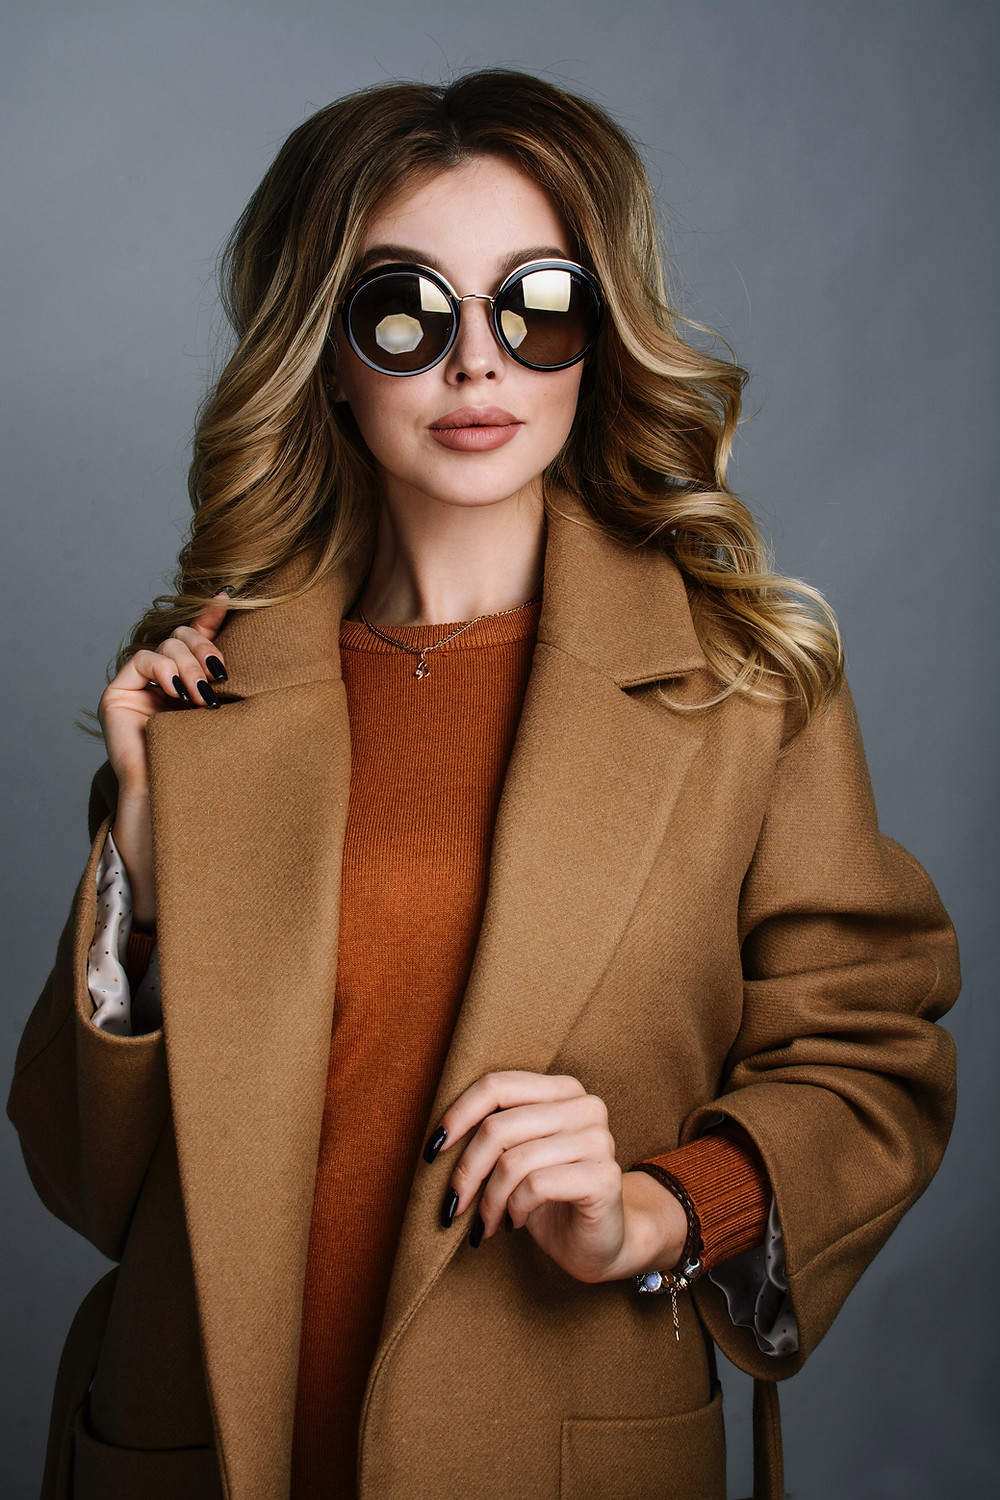 Woman in a Camel Wool Coat, The Winter Coat, Your Practical Guide, The Image Tree